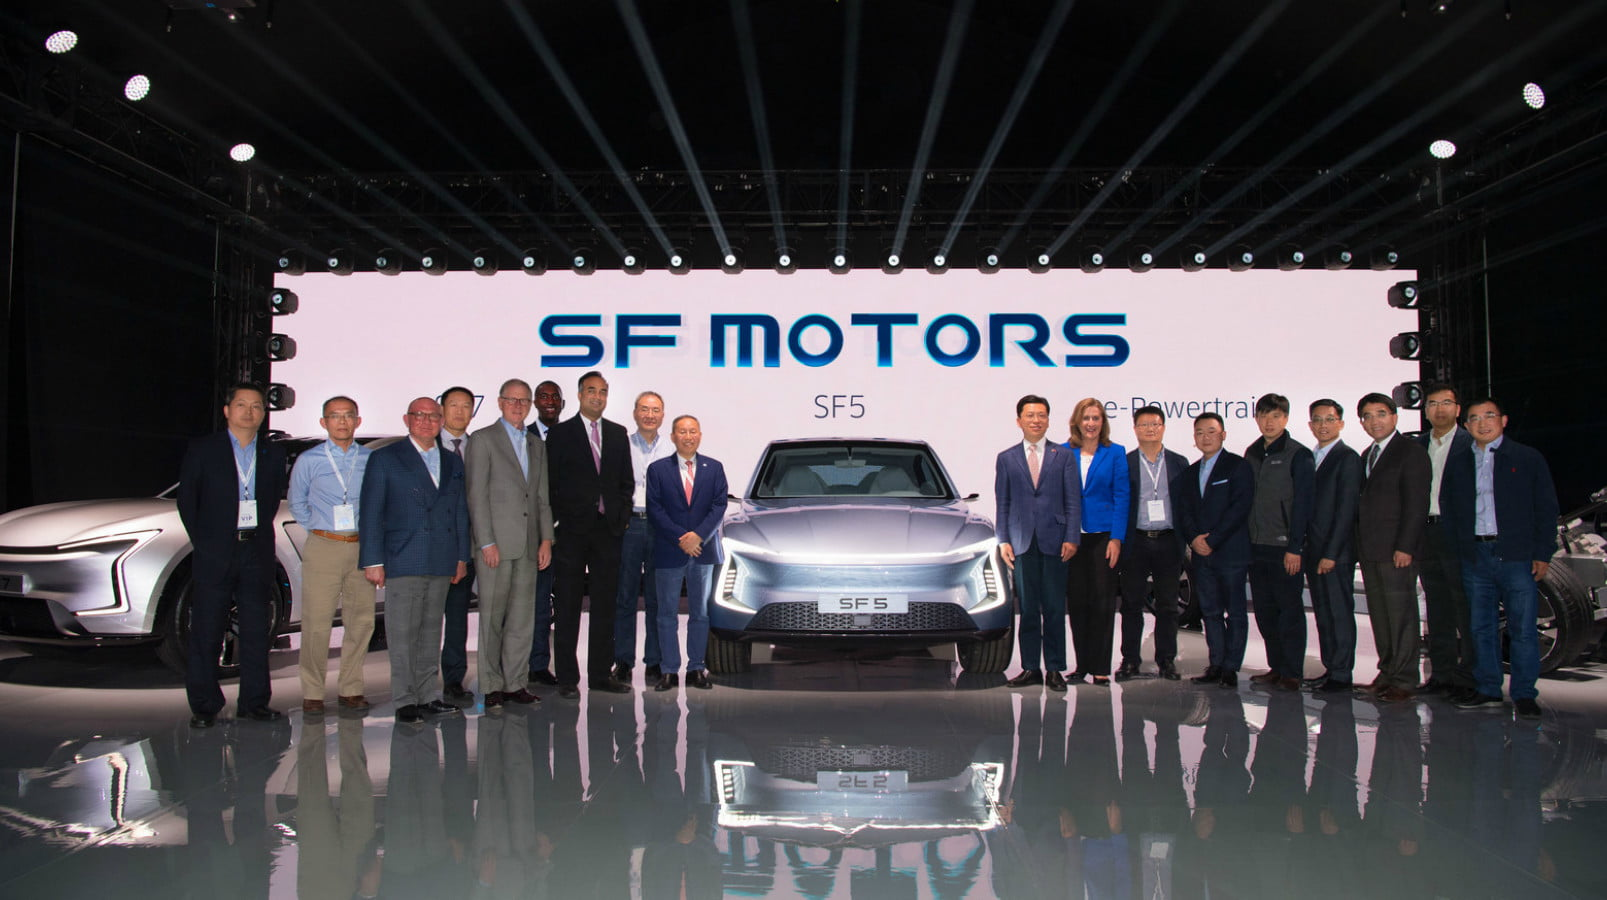 SF Motors Launch with SF5